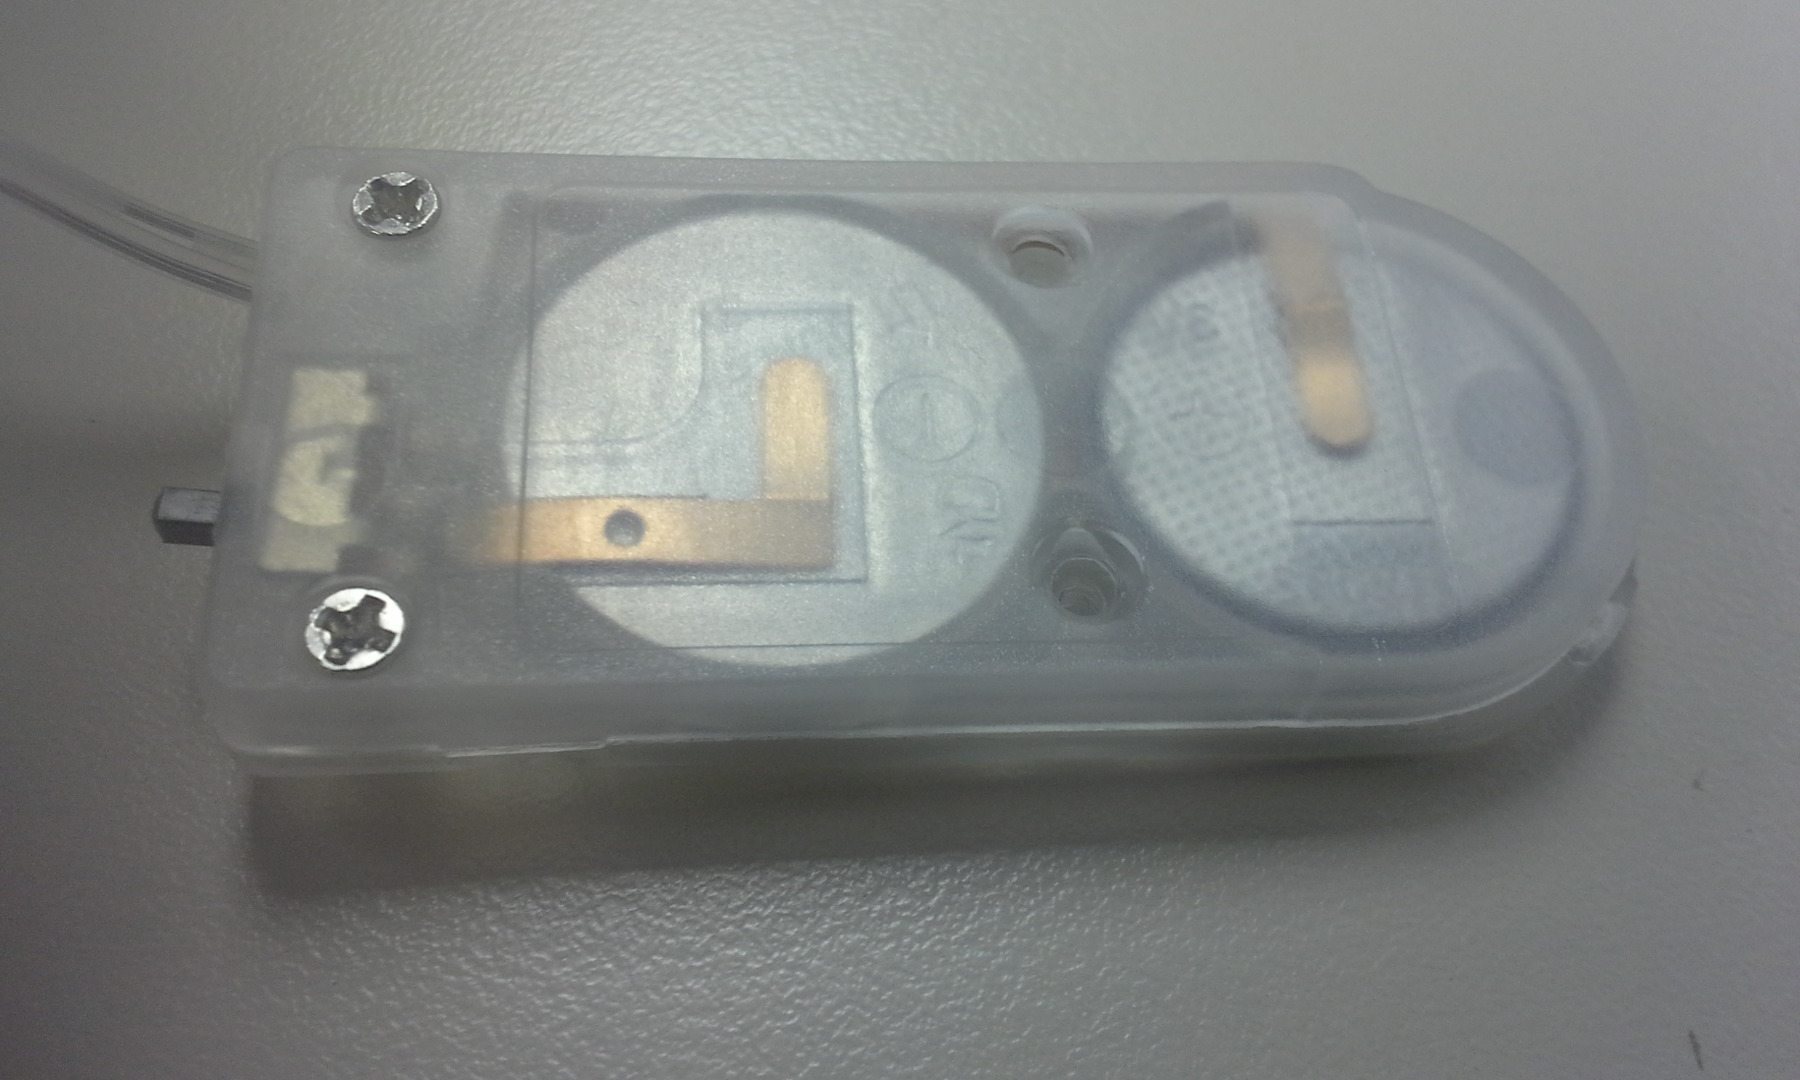 Picture of Connection Between the Contacts on the Battery Cover and the Battery